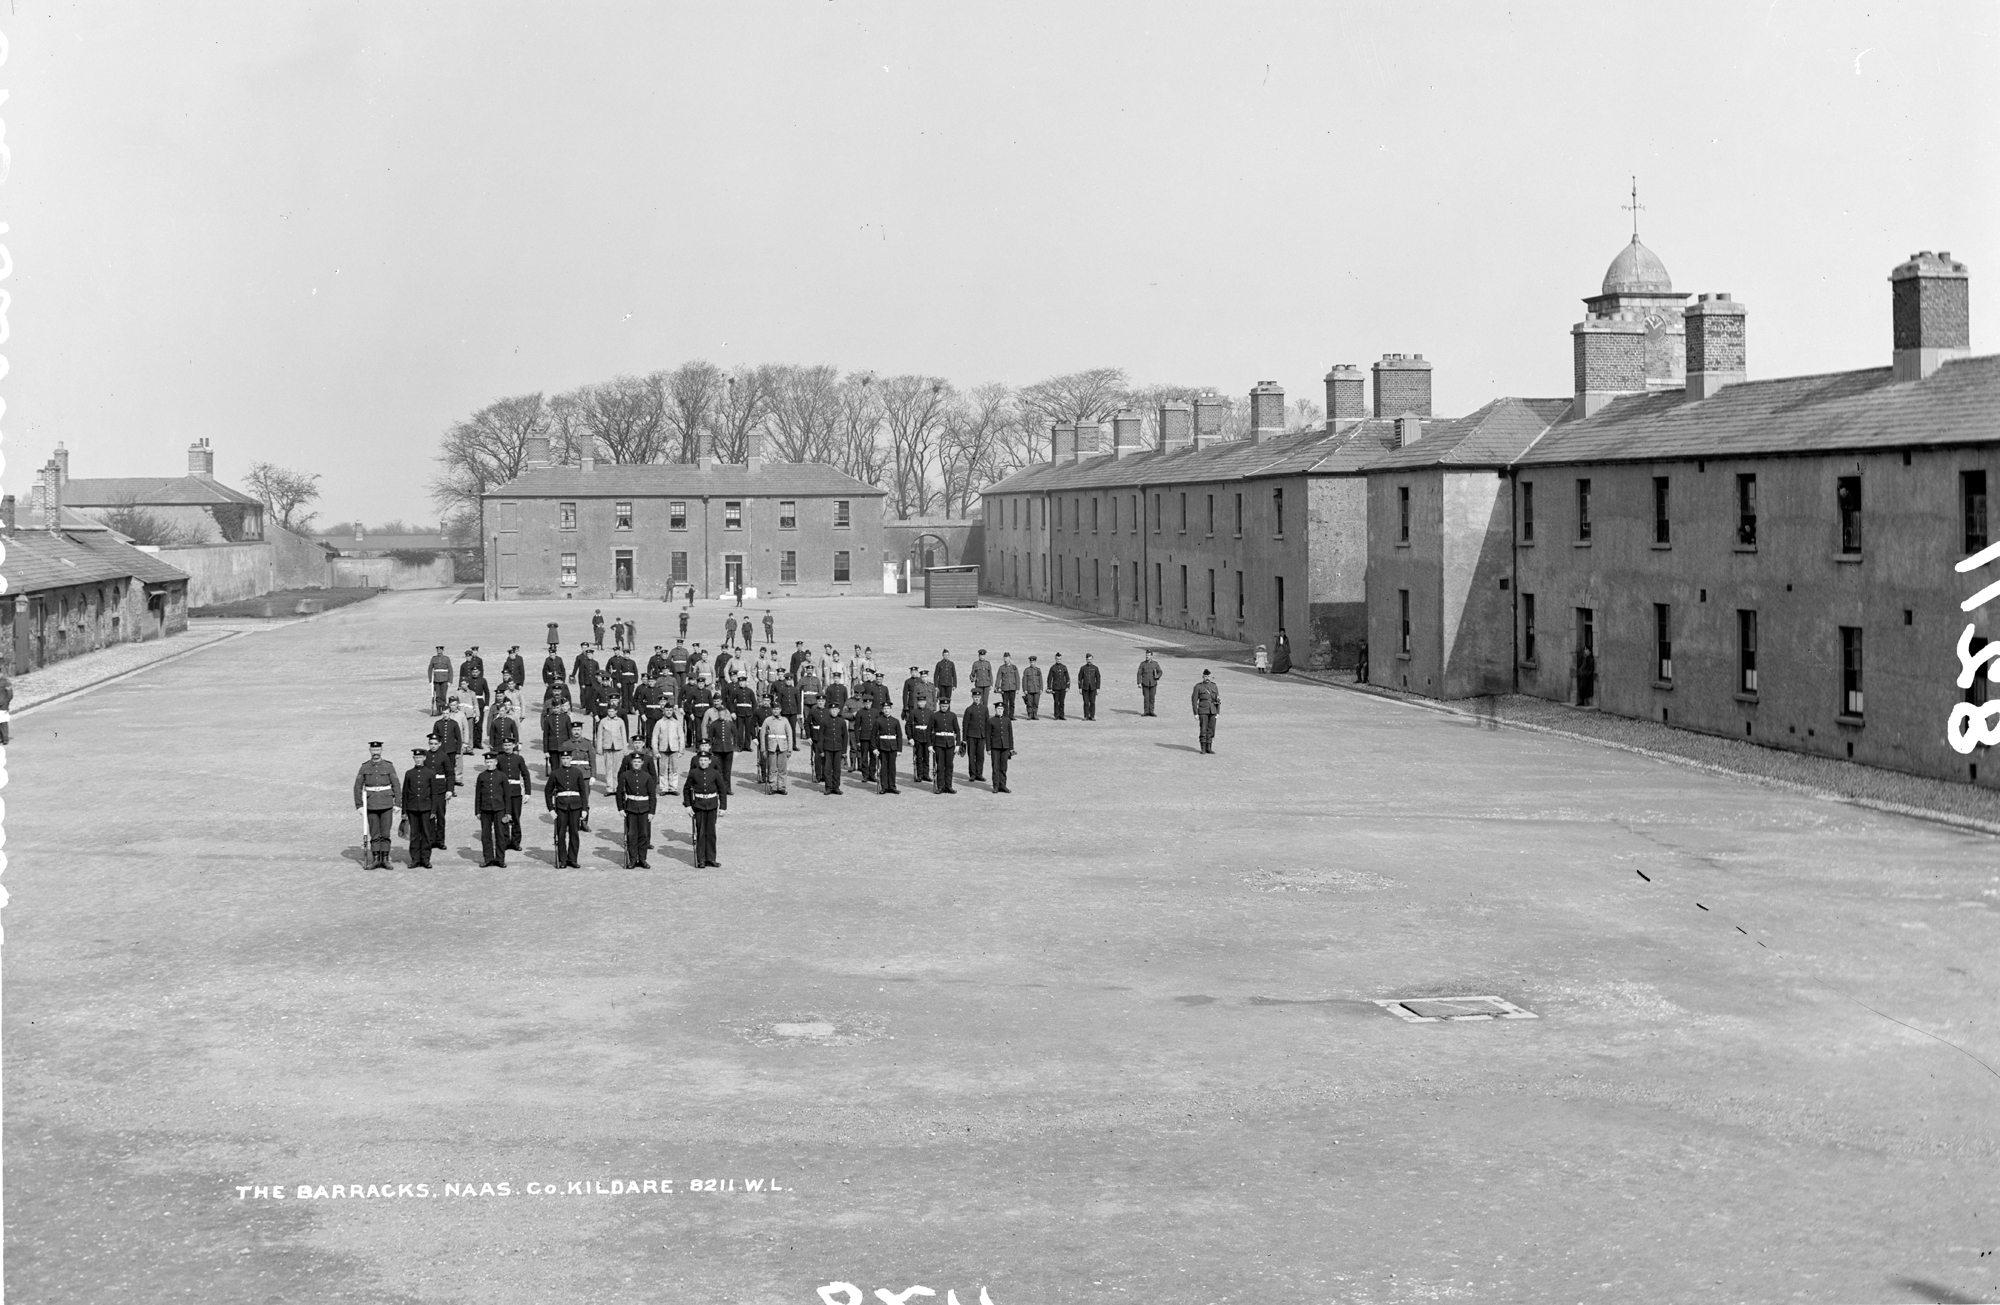 Barracks, Naas, Co. Kildare